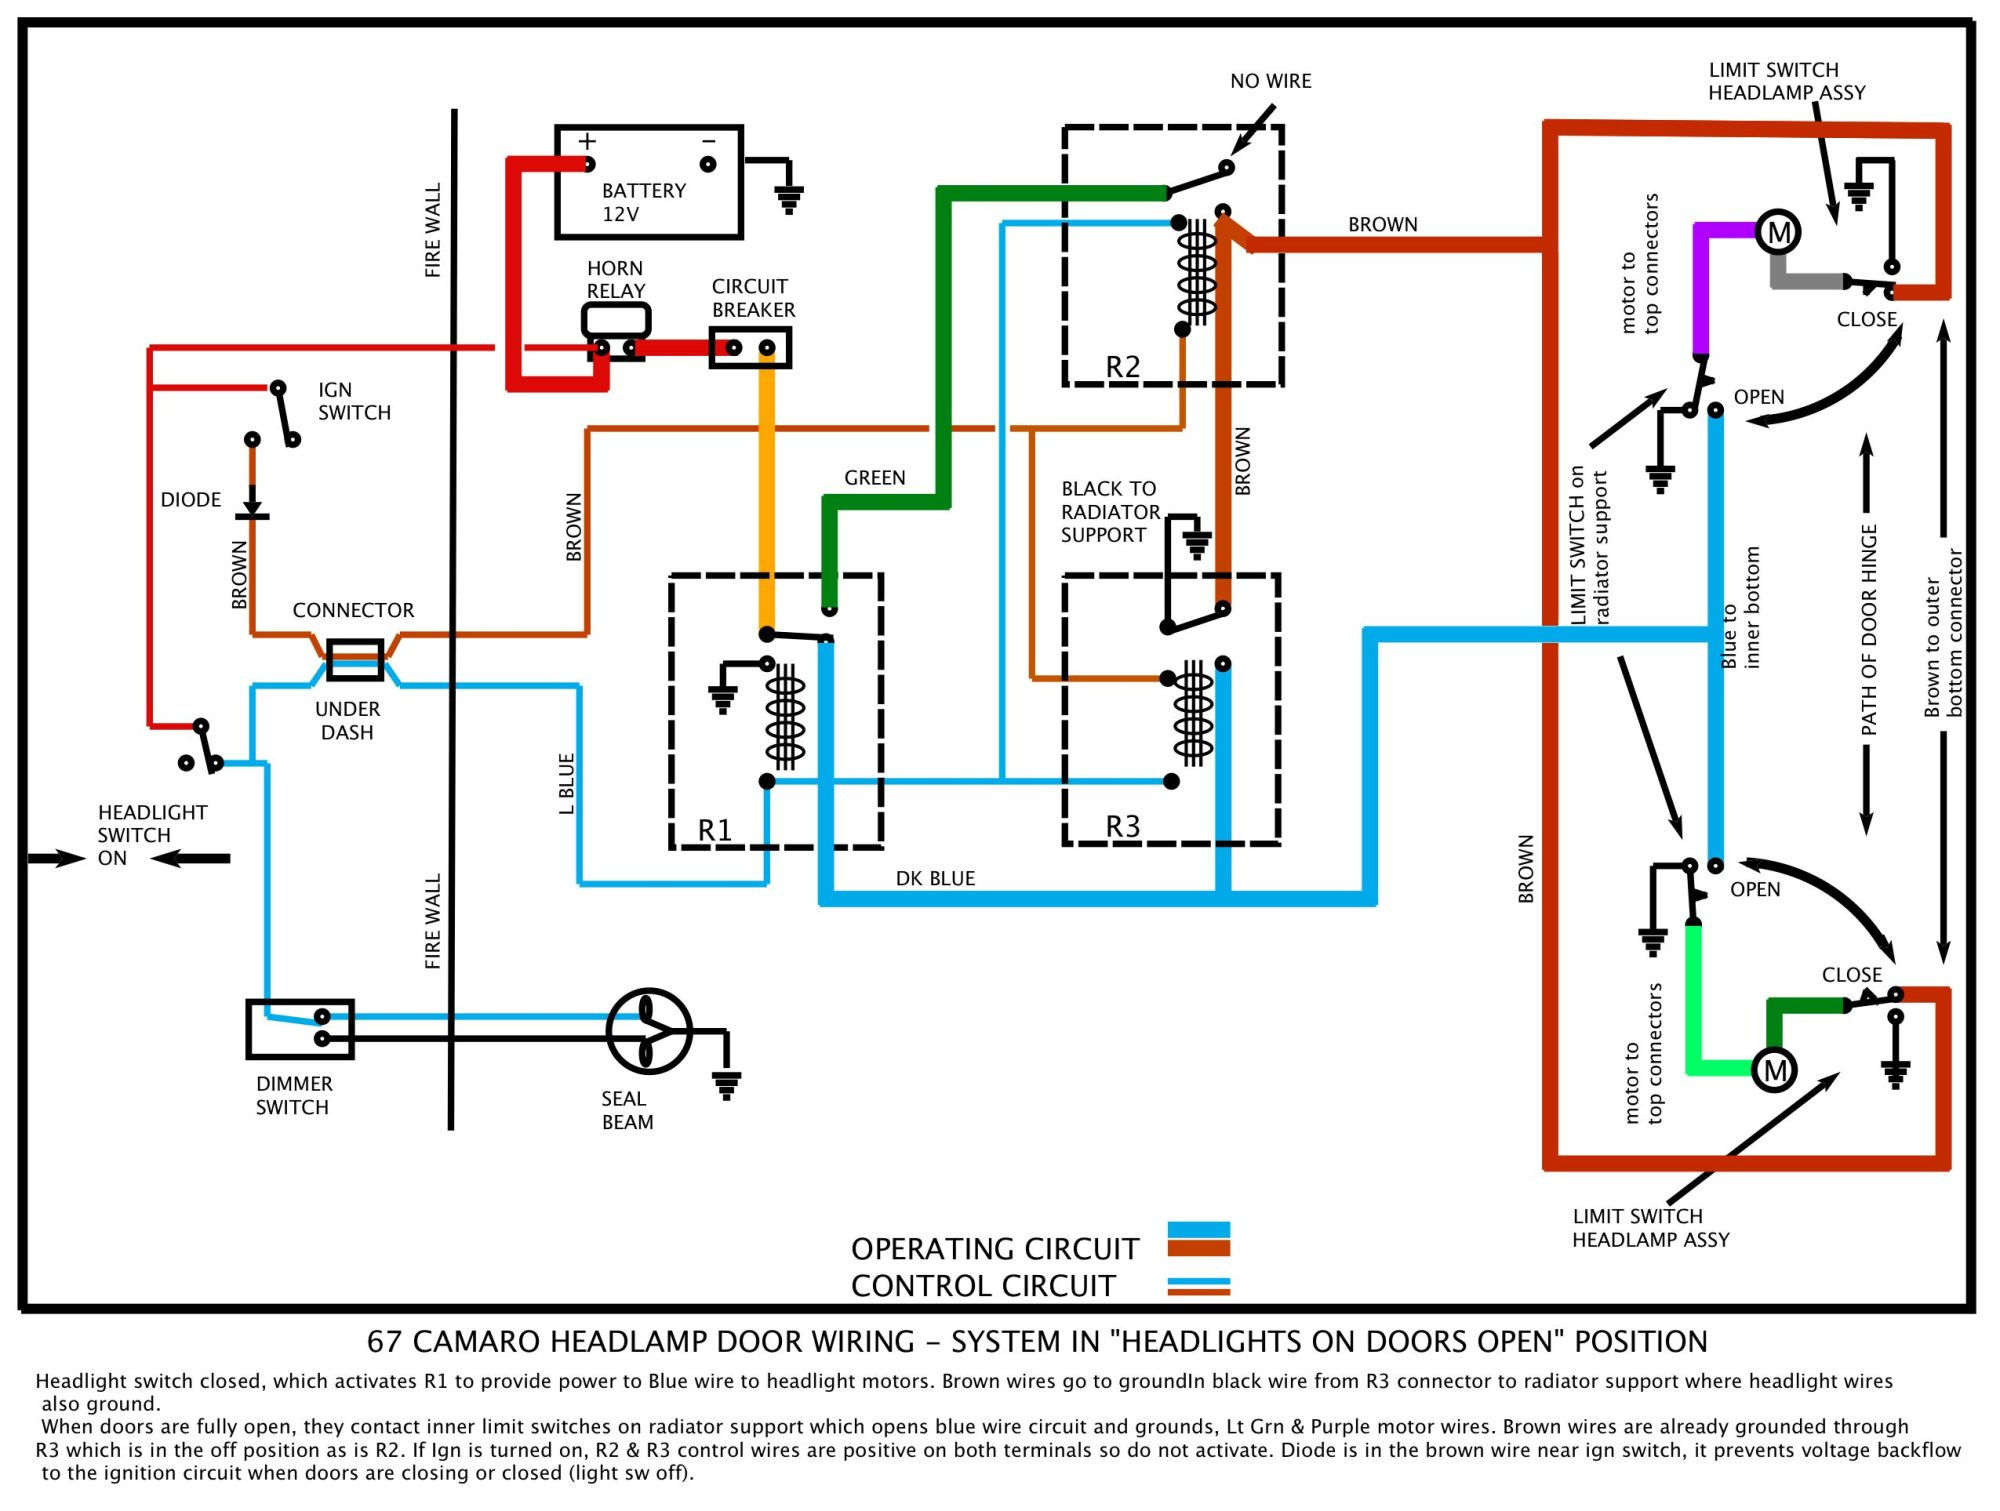 hight resolution of 67 rs headlight doors freightliner headlight circuit diagram headlight circuit diagram